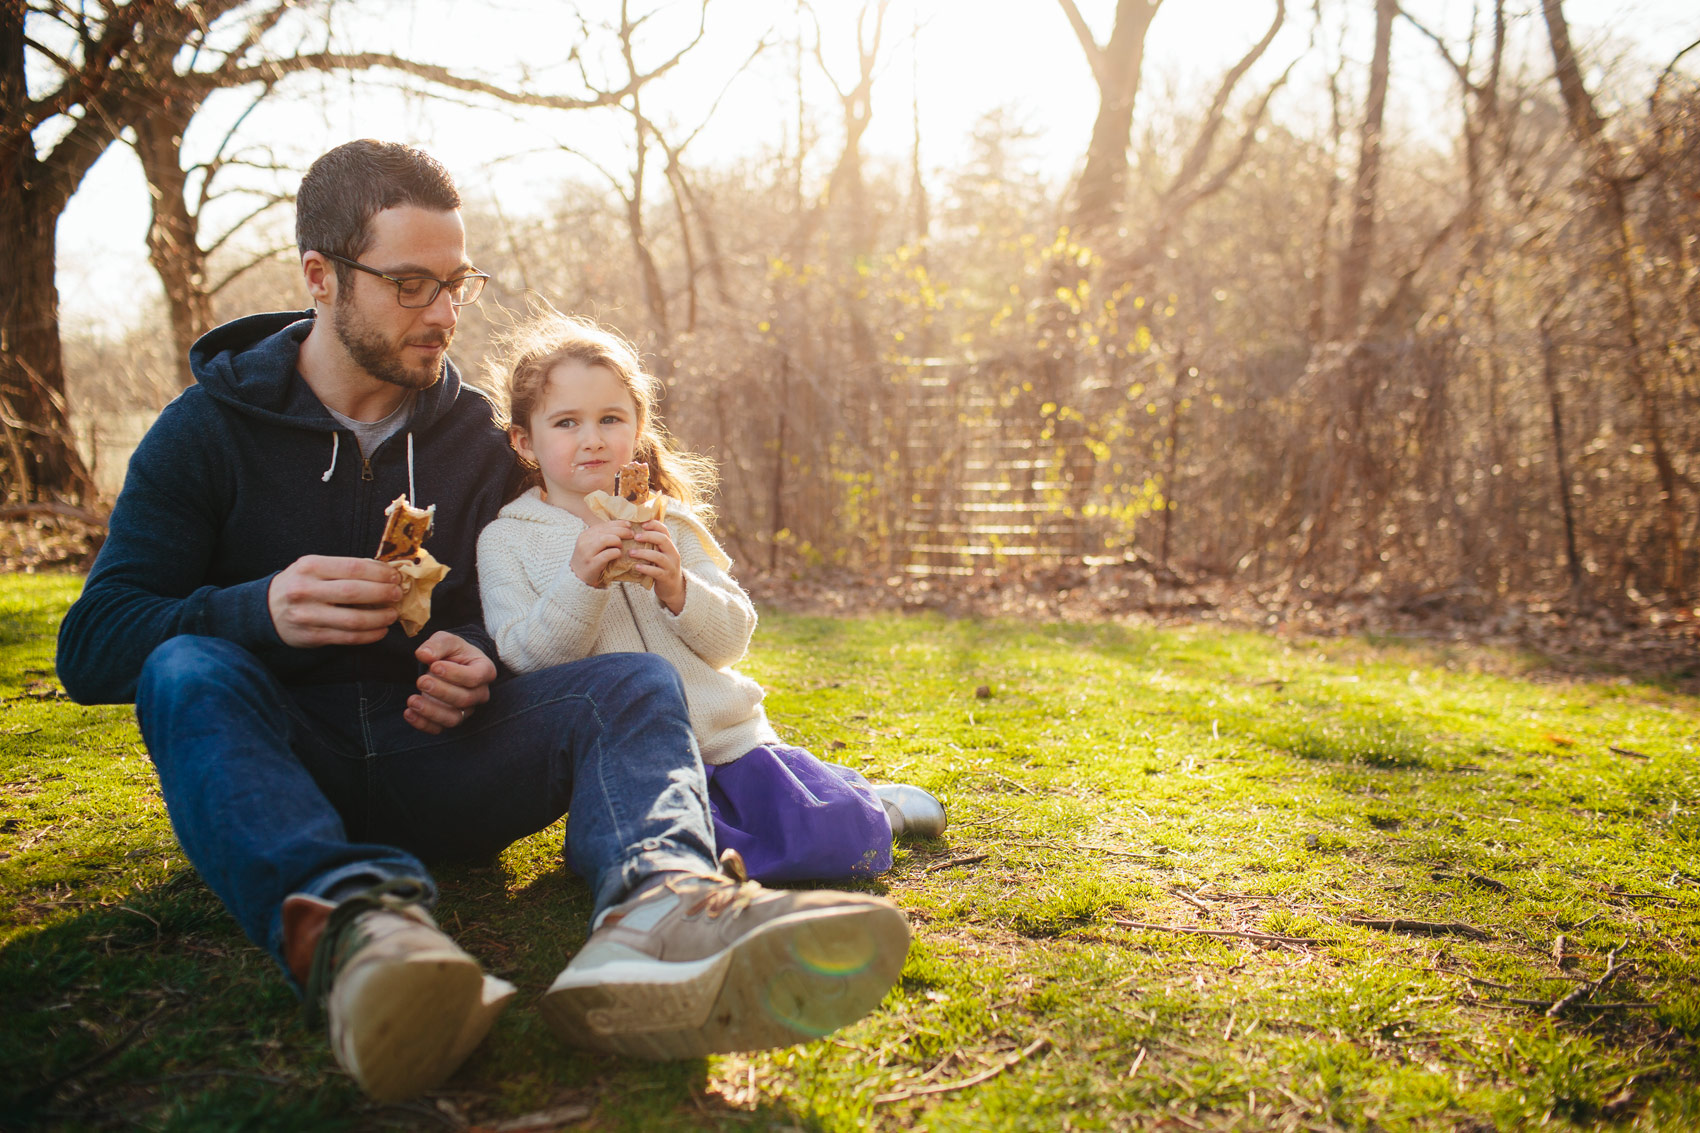 father and daughter eating ice cream sandwiches in park, washington dc commercial photography